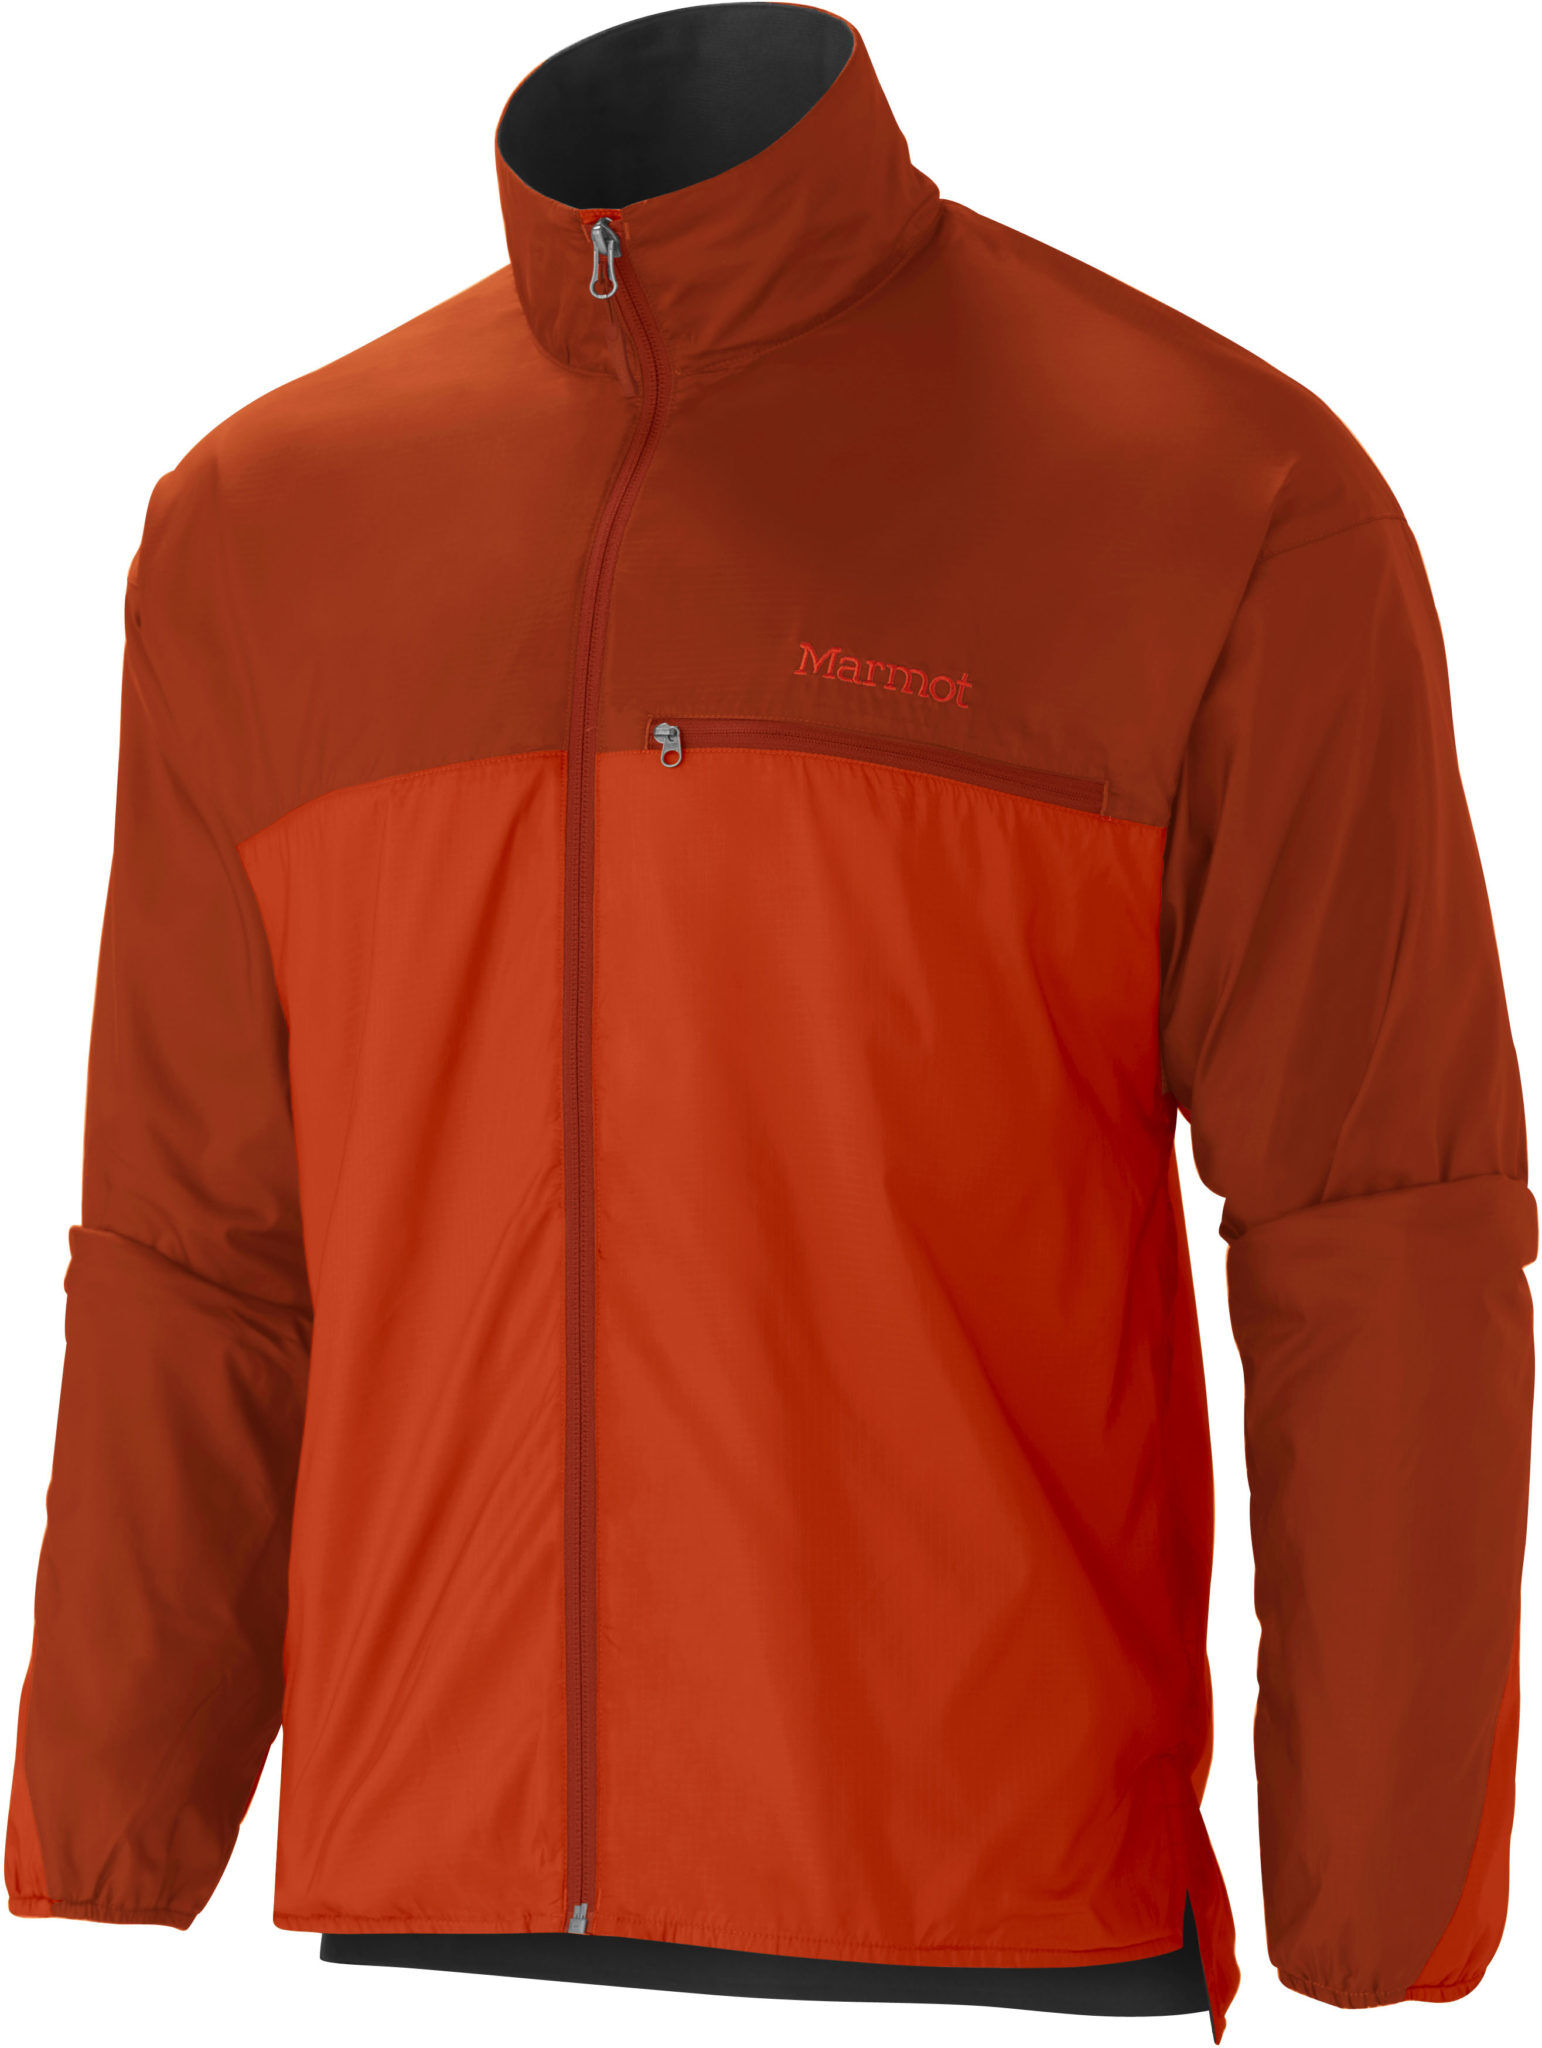 The Marmot DriClime jacket in orange haze. Image from Paragon Sports.